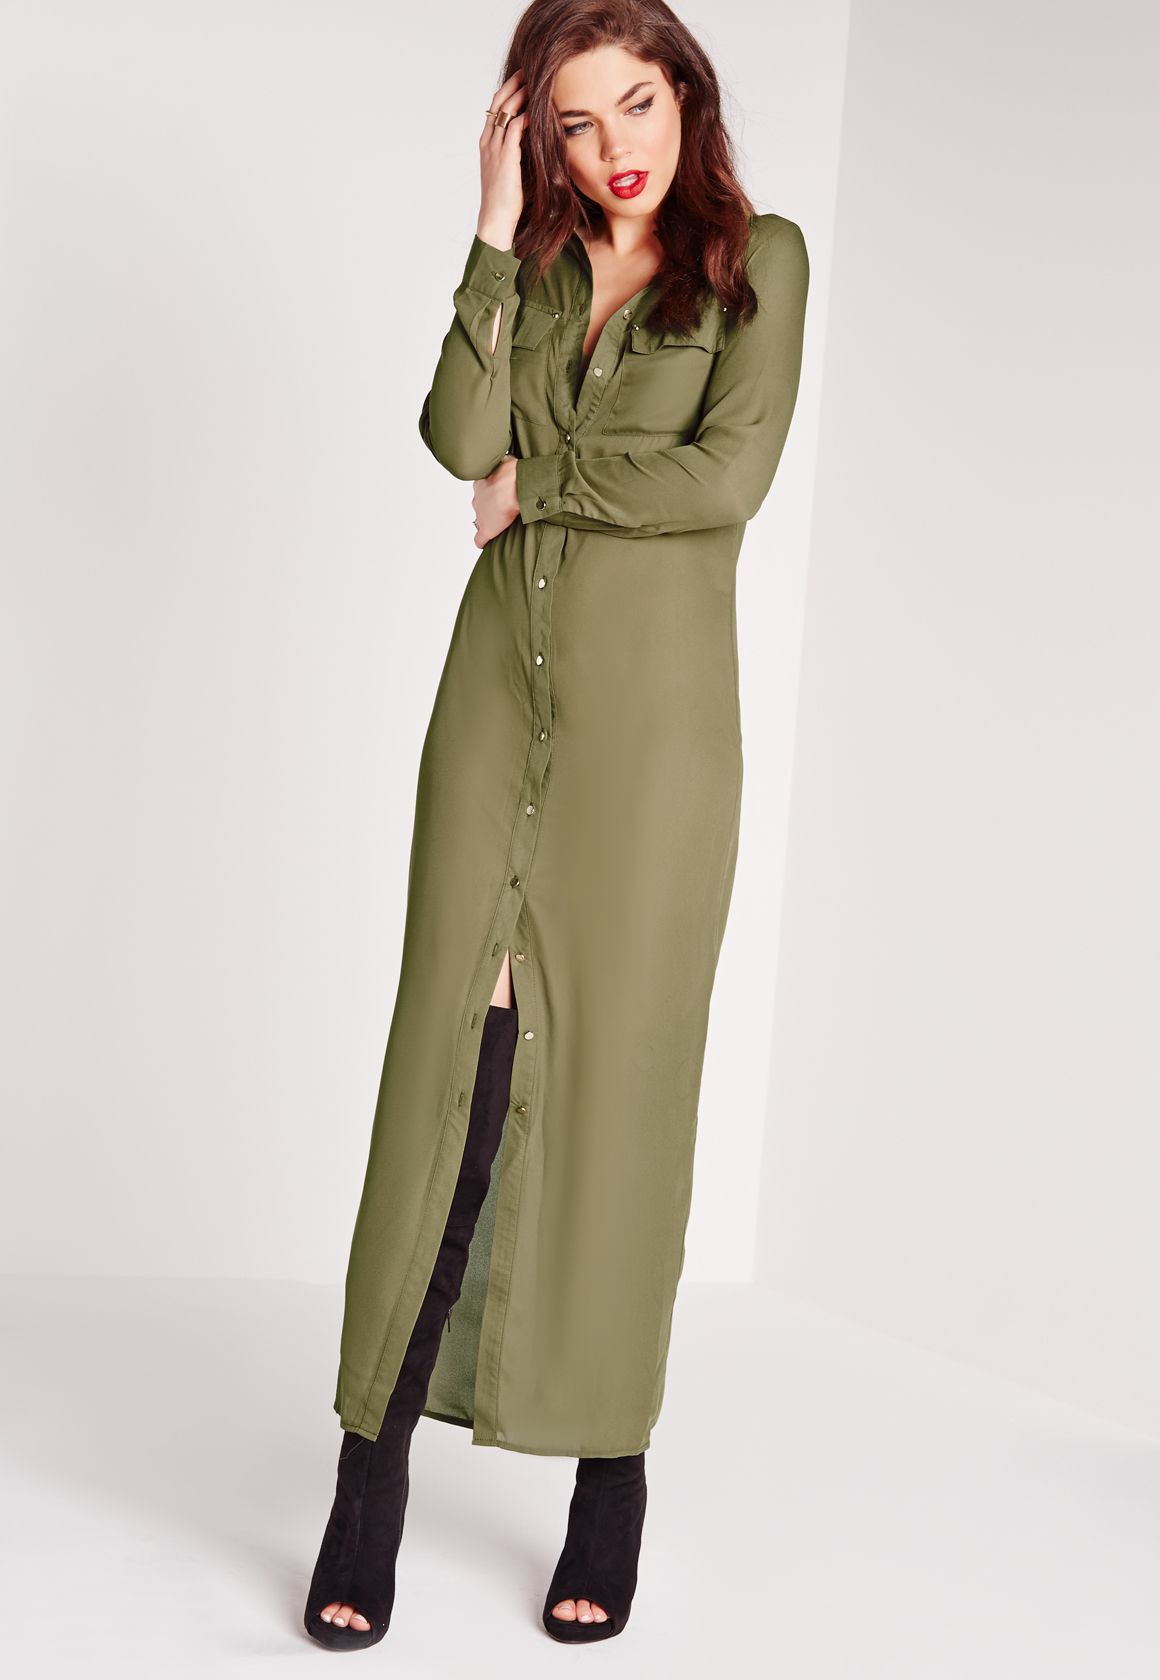 Missguided maxi length long sleeve shirt dress khaki in Women s long sleeve shirt dress